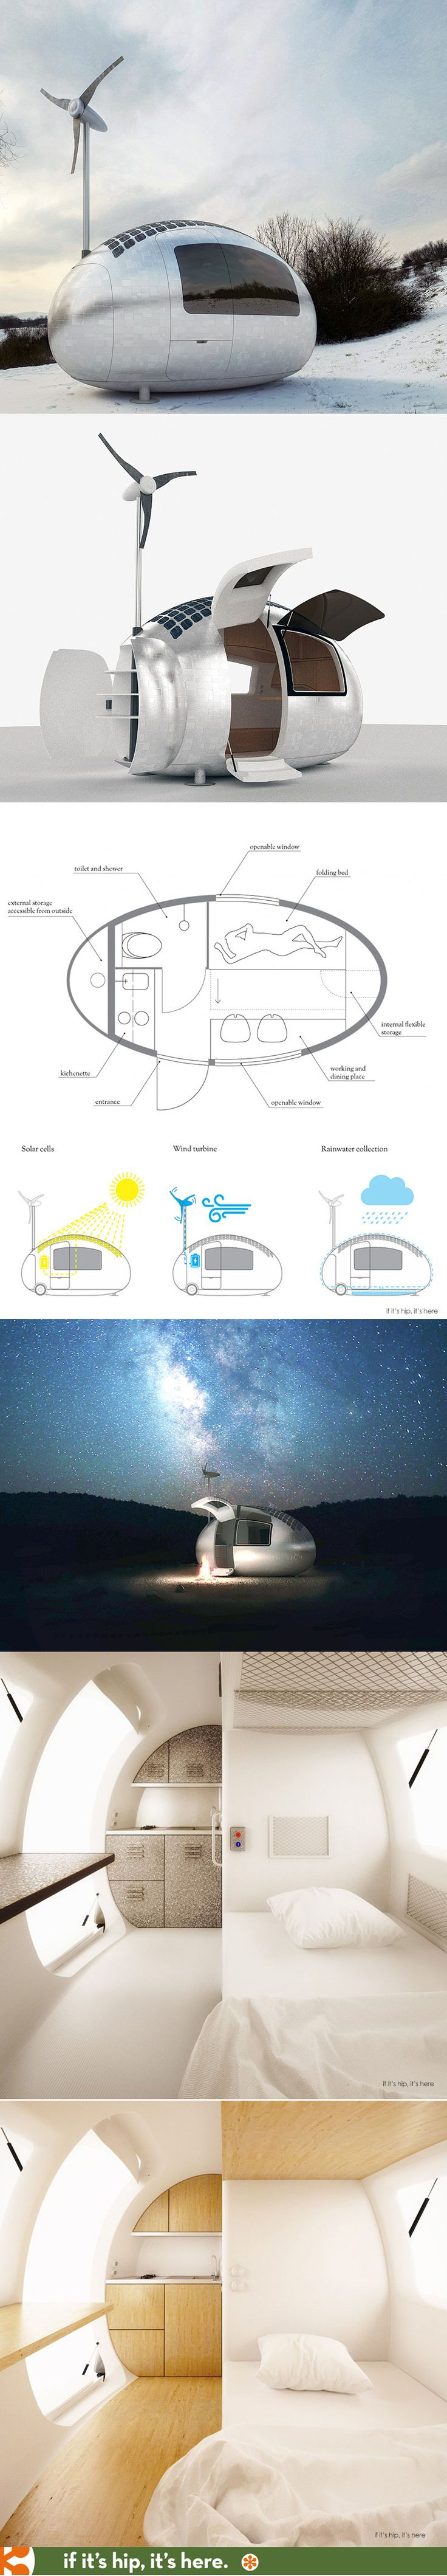 The solar and wind powered Ecocapsule with kitchenette, toilet, shower and warm bed.